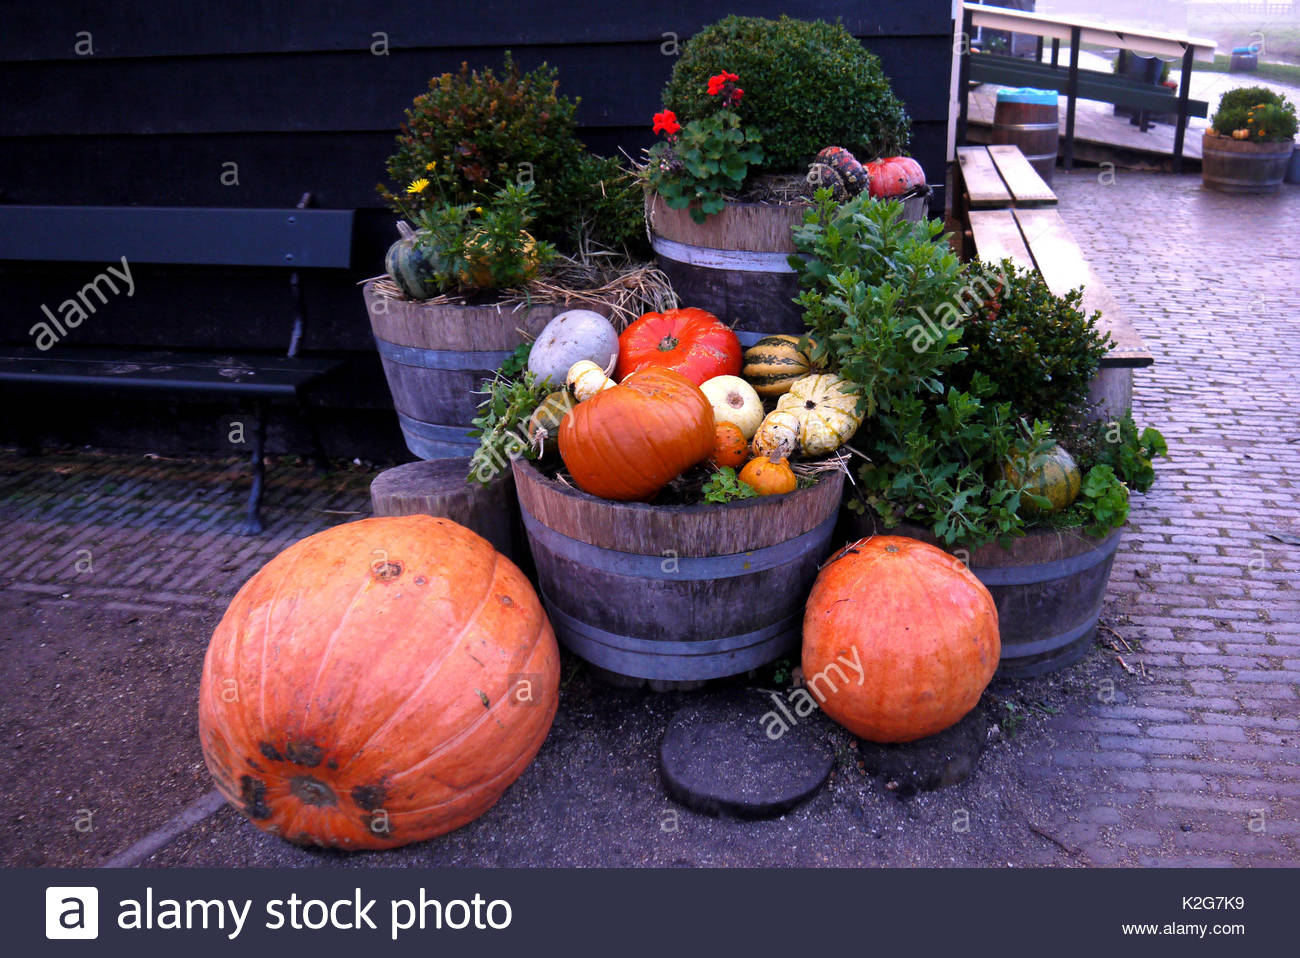 Pumpkins in basket and decorative corns. Defocused colorful leaves in the background - Stock Image